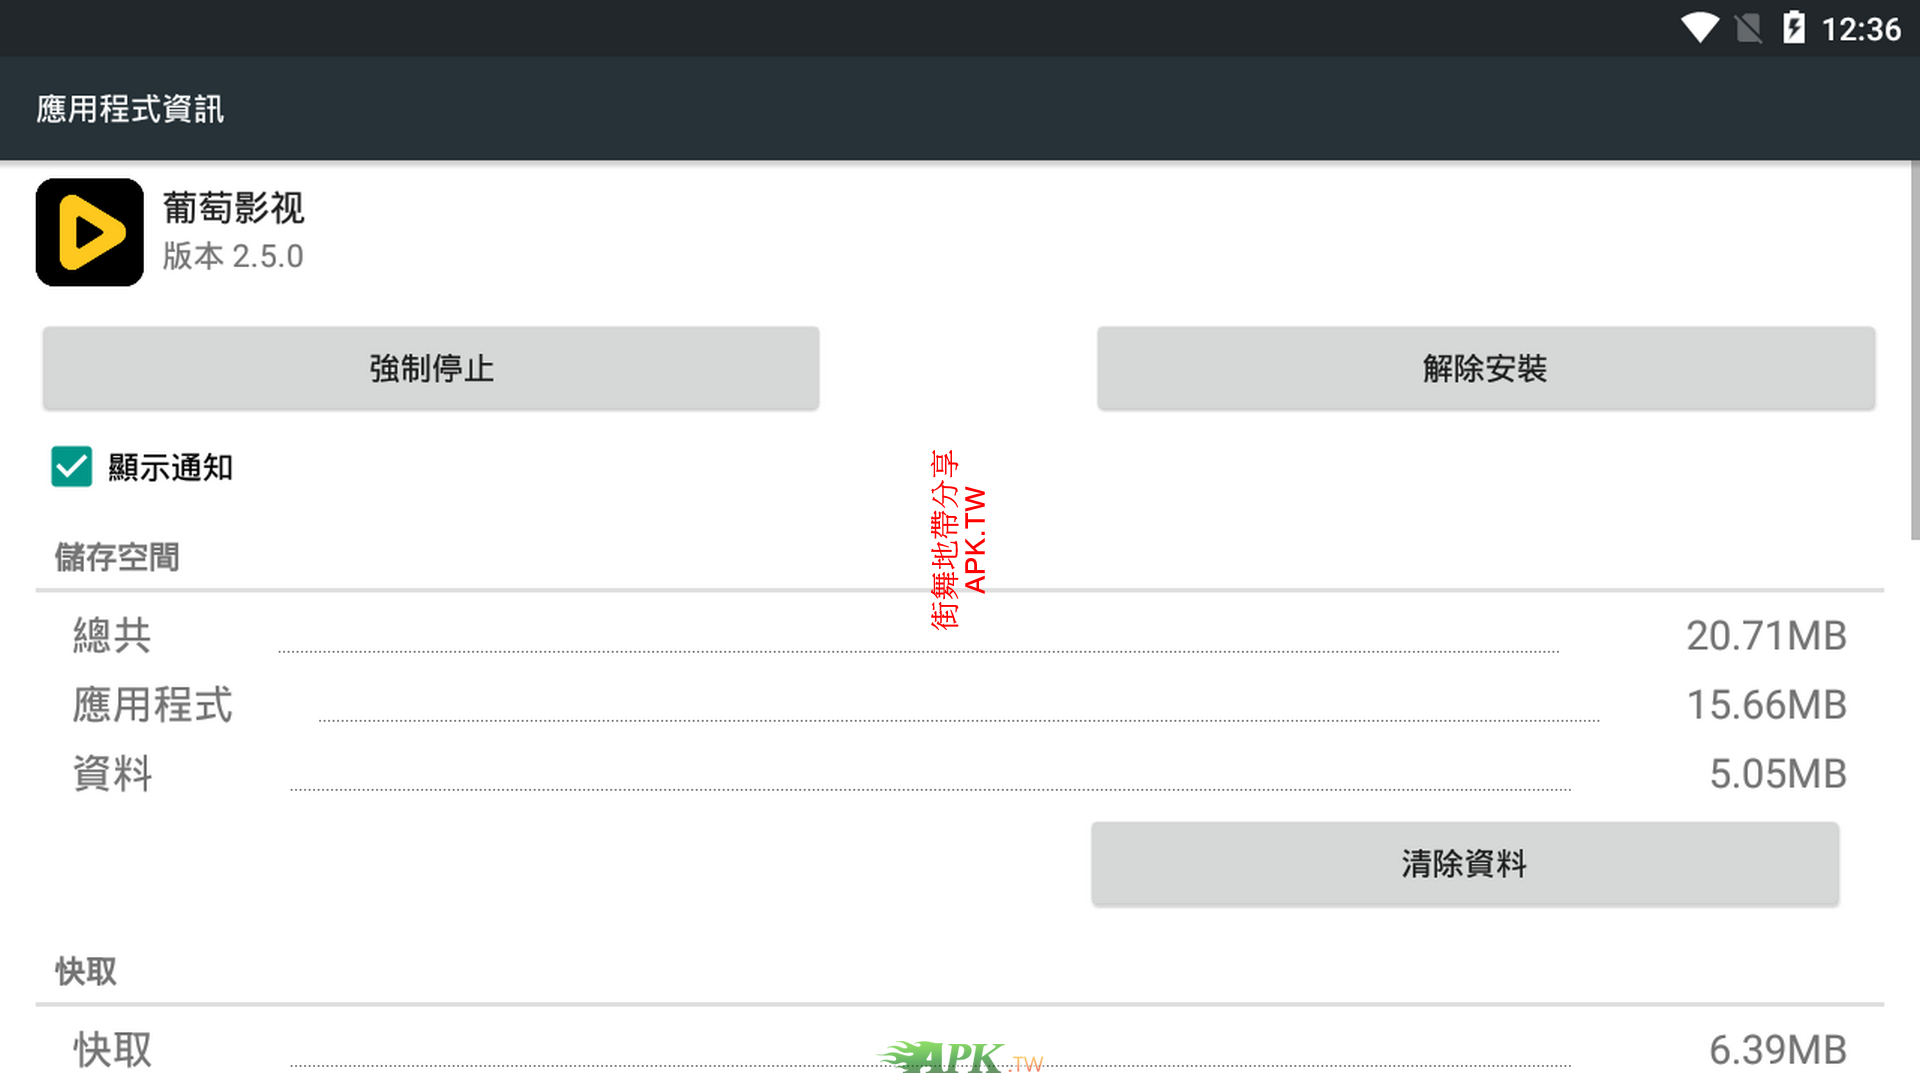 Screenshot_2019-04-20-12-36-07 (複製).png